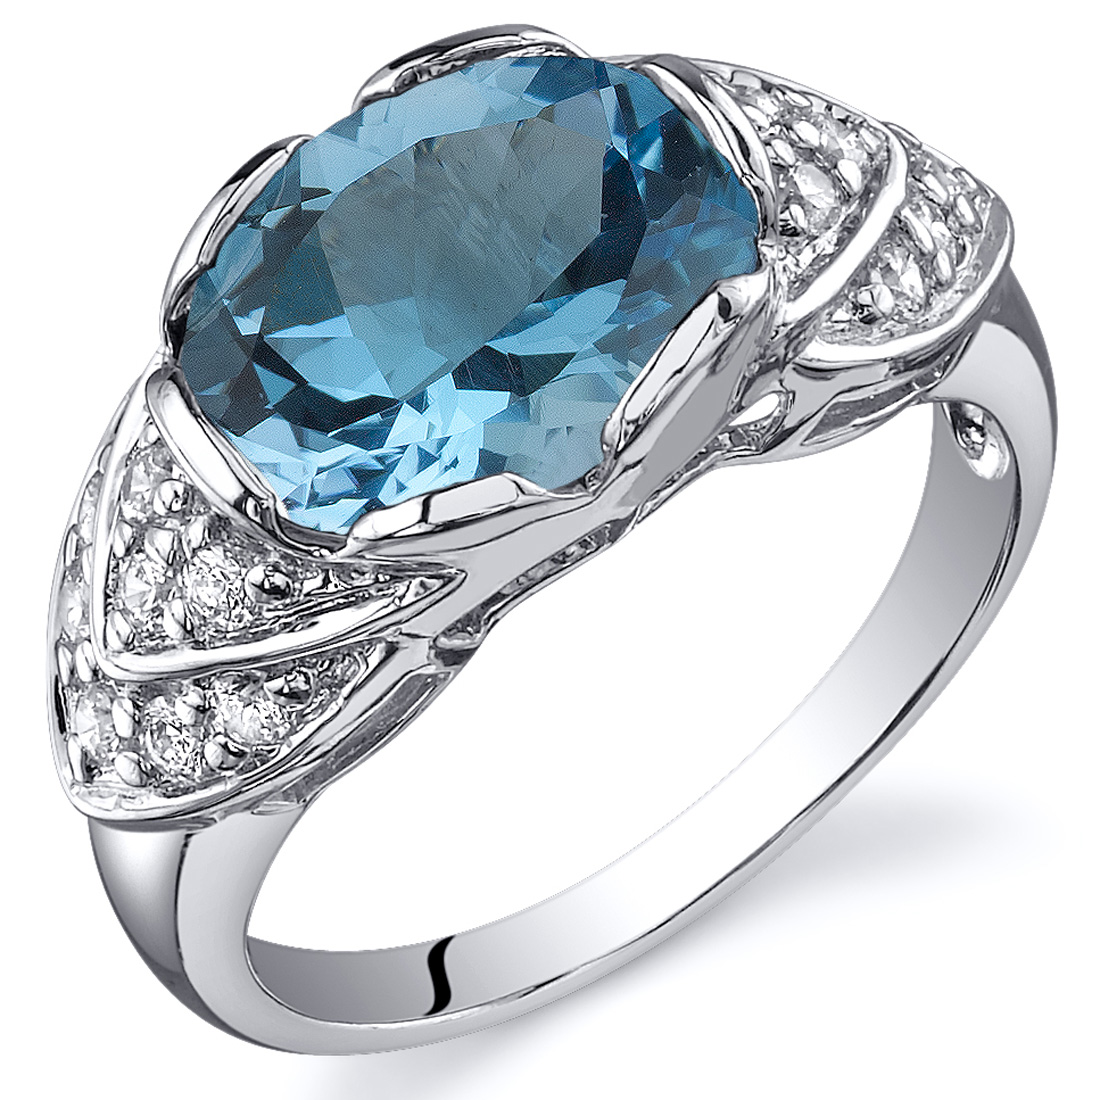 Channel Set 2.75 cts Alexandrite CZ Ring Sterling Silver